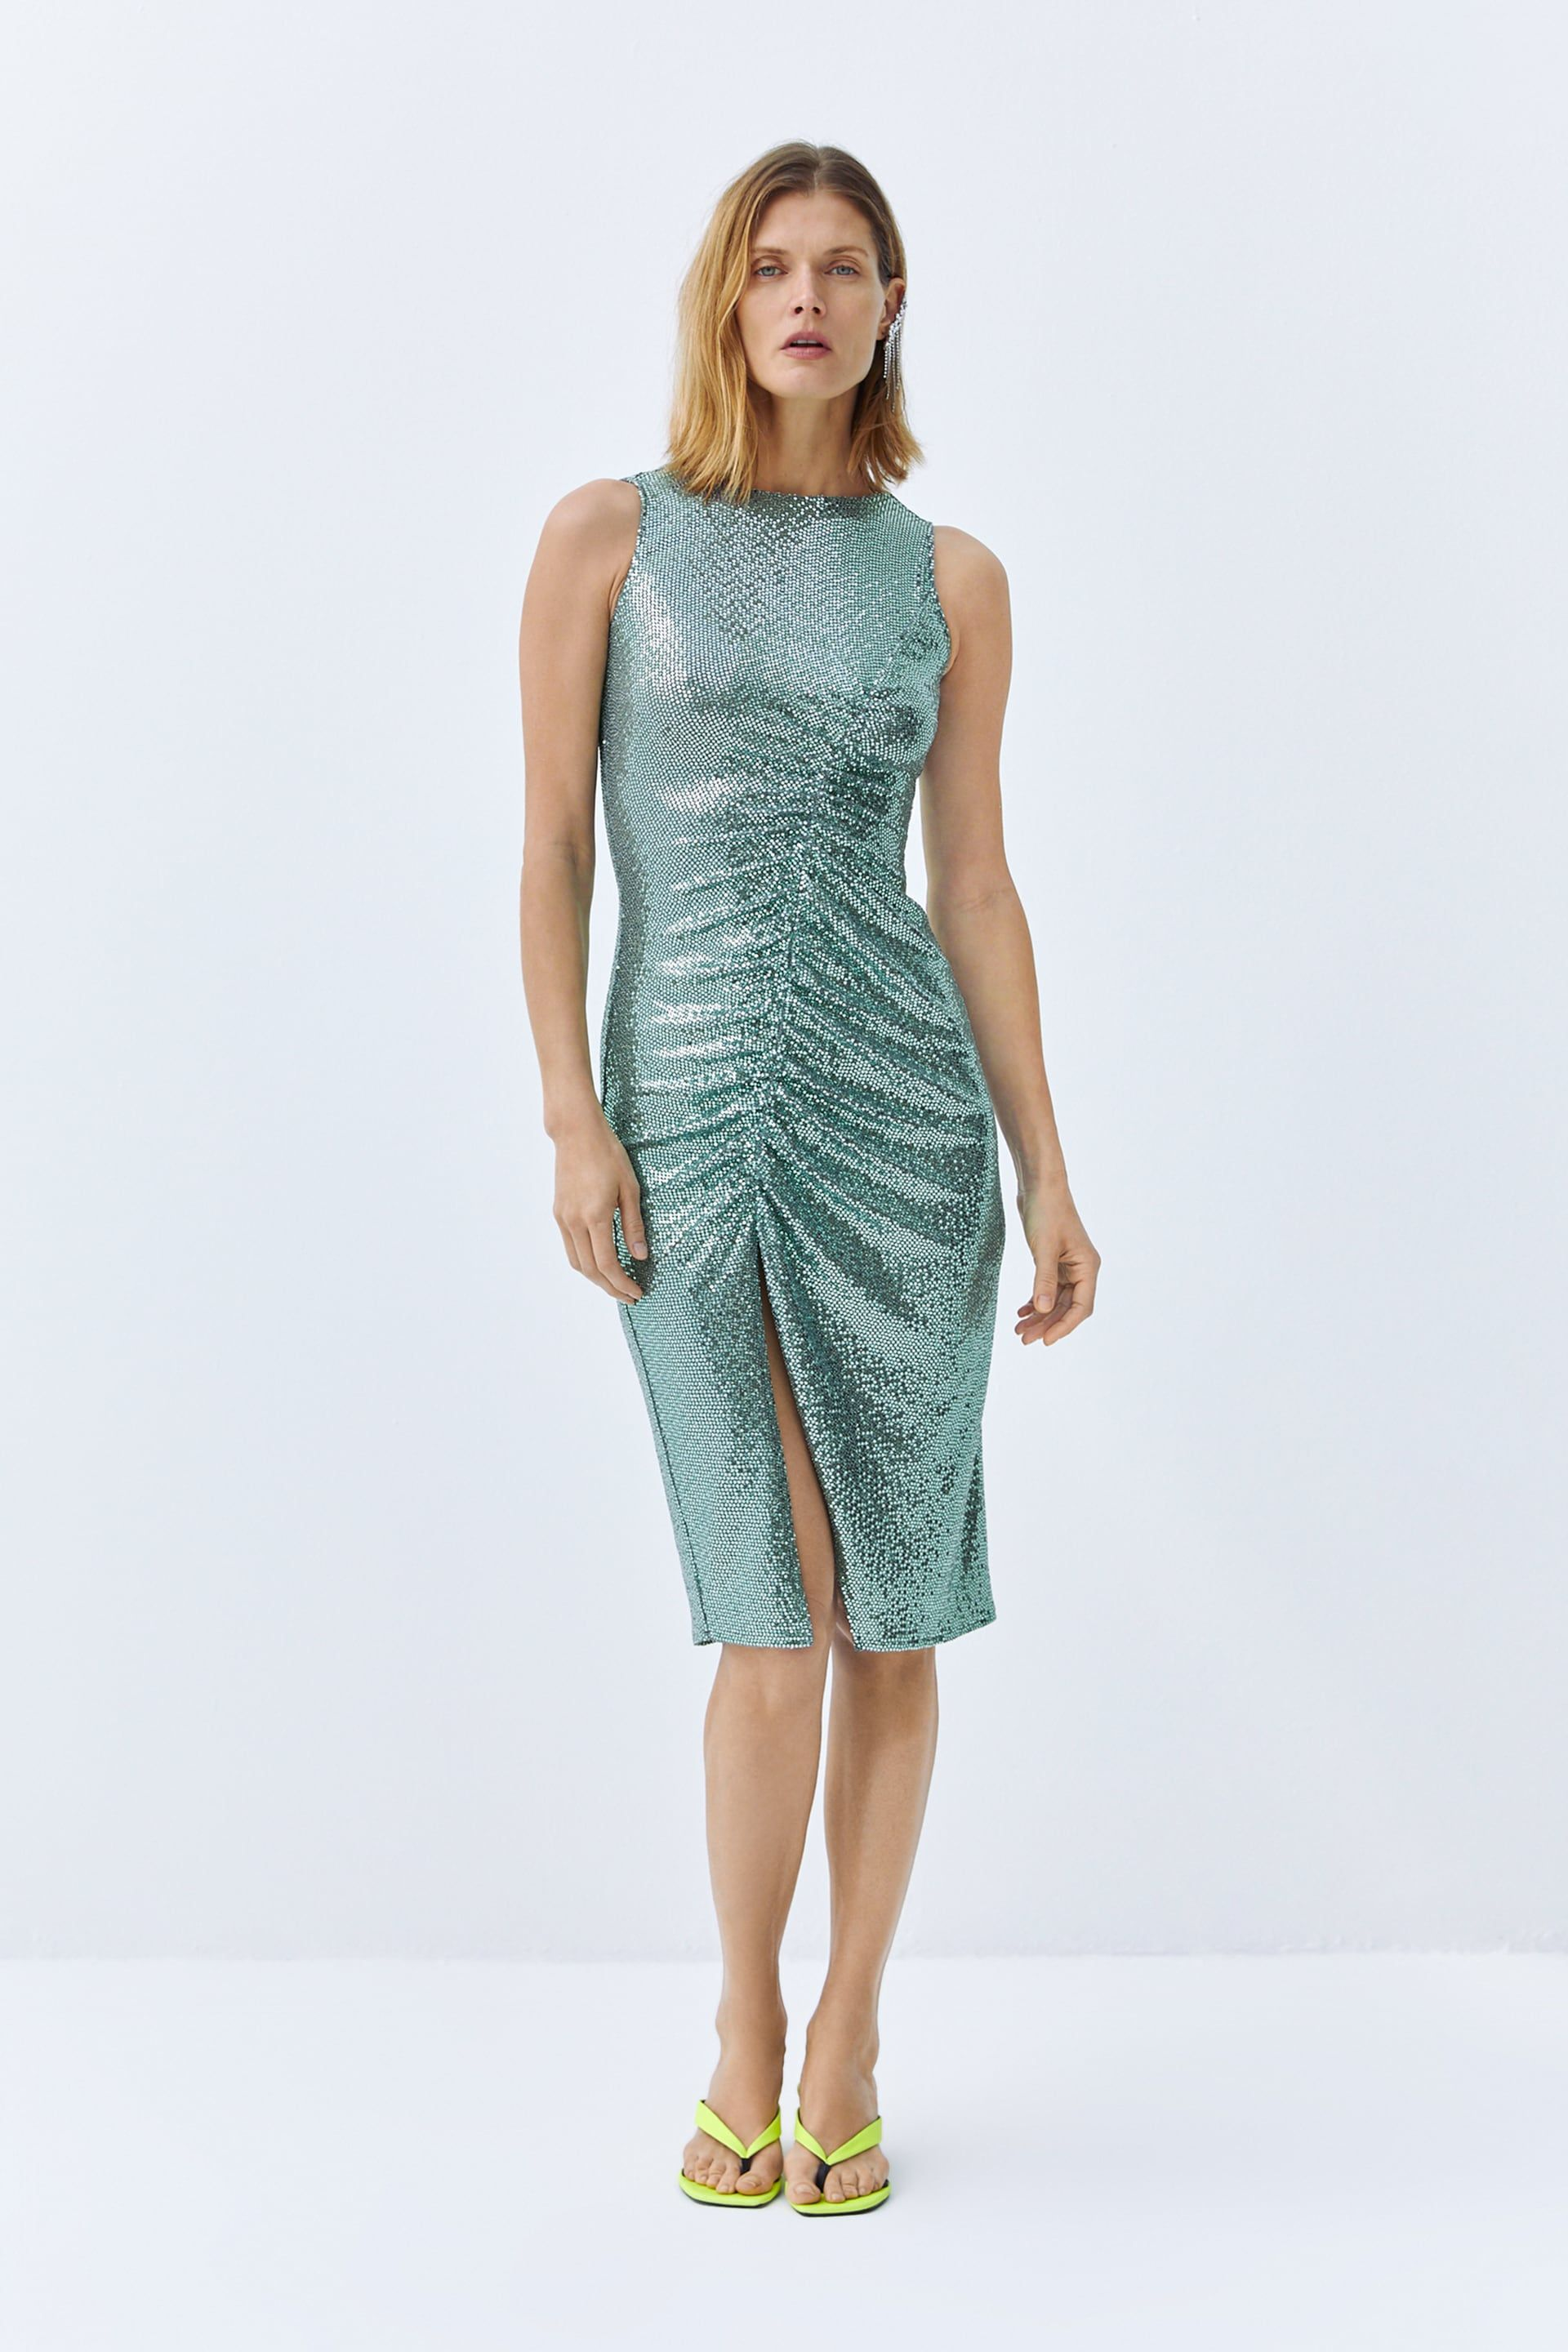 b2ac0e86 Sequin dress in 2019 | style | evening | Sequin dress, Dresses, Sequins